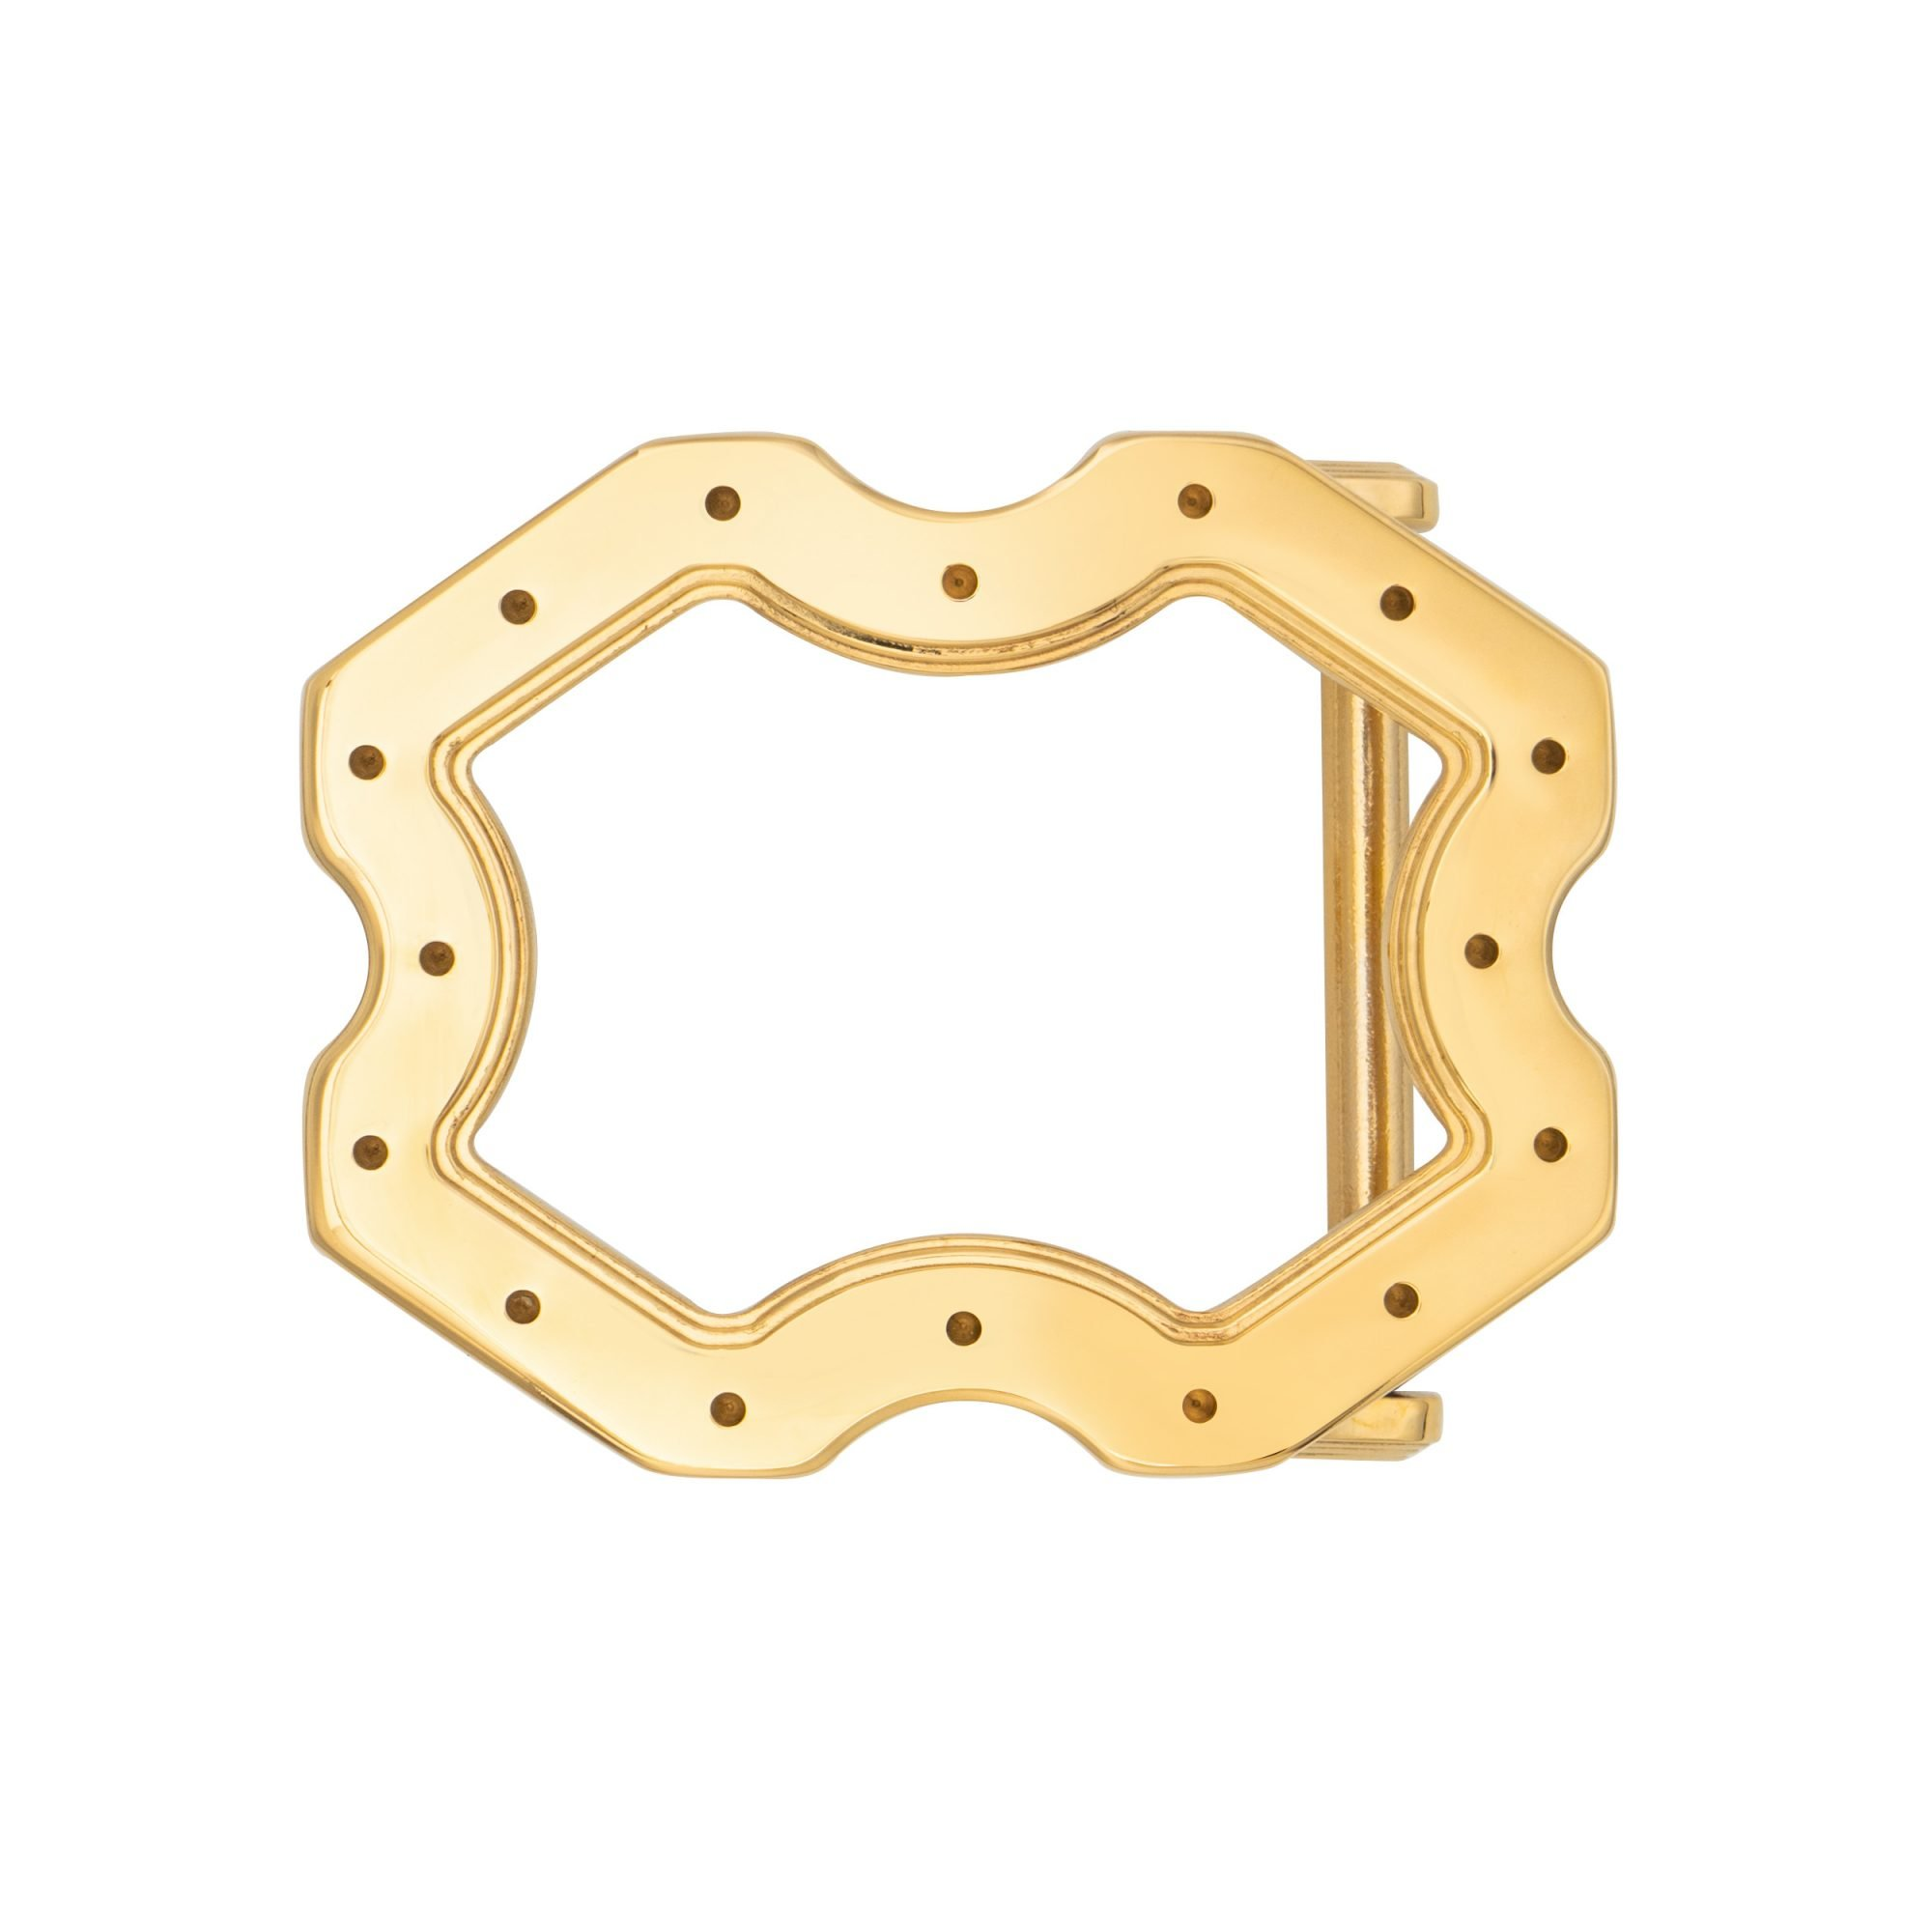 VIKTOR ALEXANDER 38MM STAINLESS STEEL BELT BUCKLE X FRAME INDENTED YELLOW GOLD FRONT PROFILE